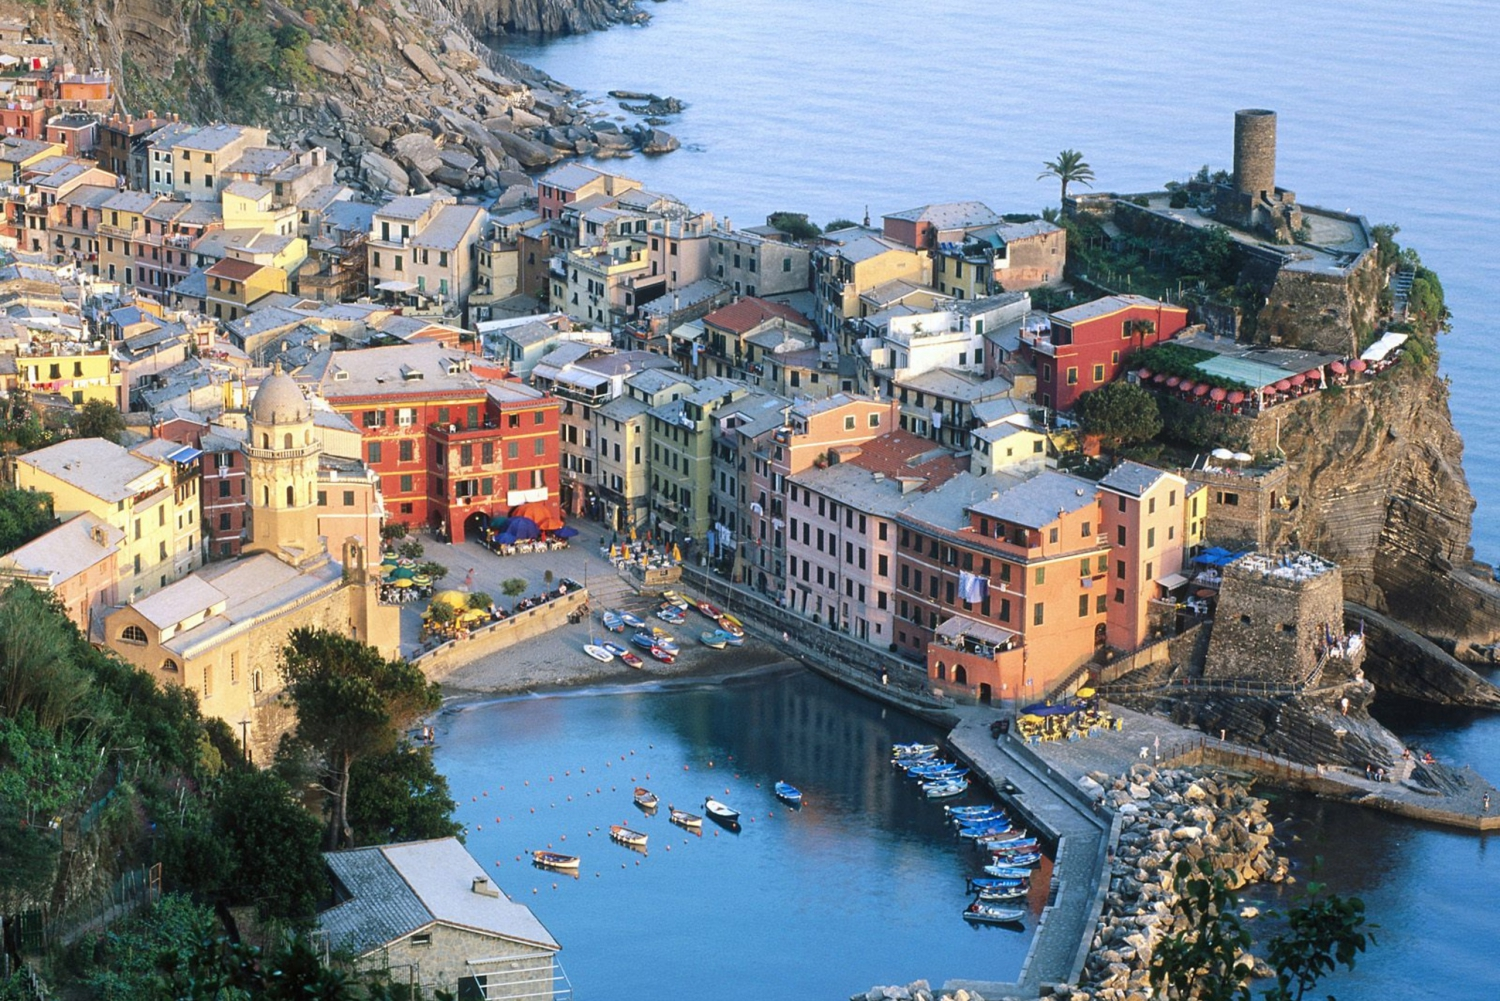 From Seaside Beauty Day Trip to Cinque Terre